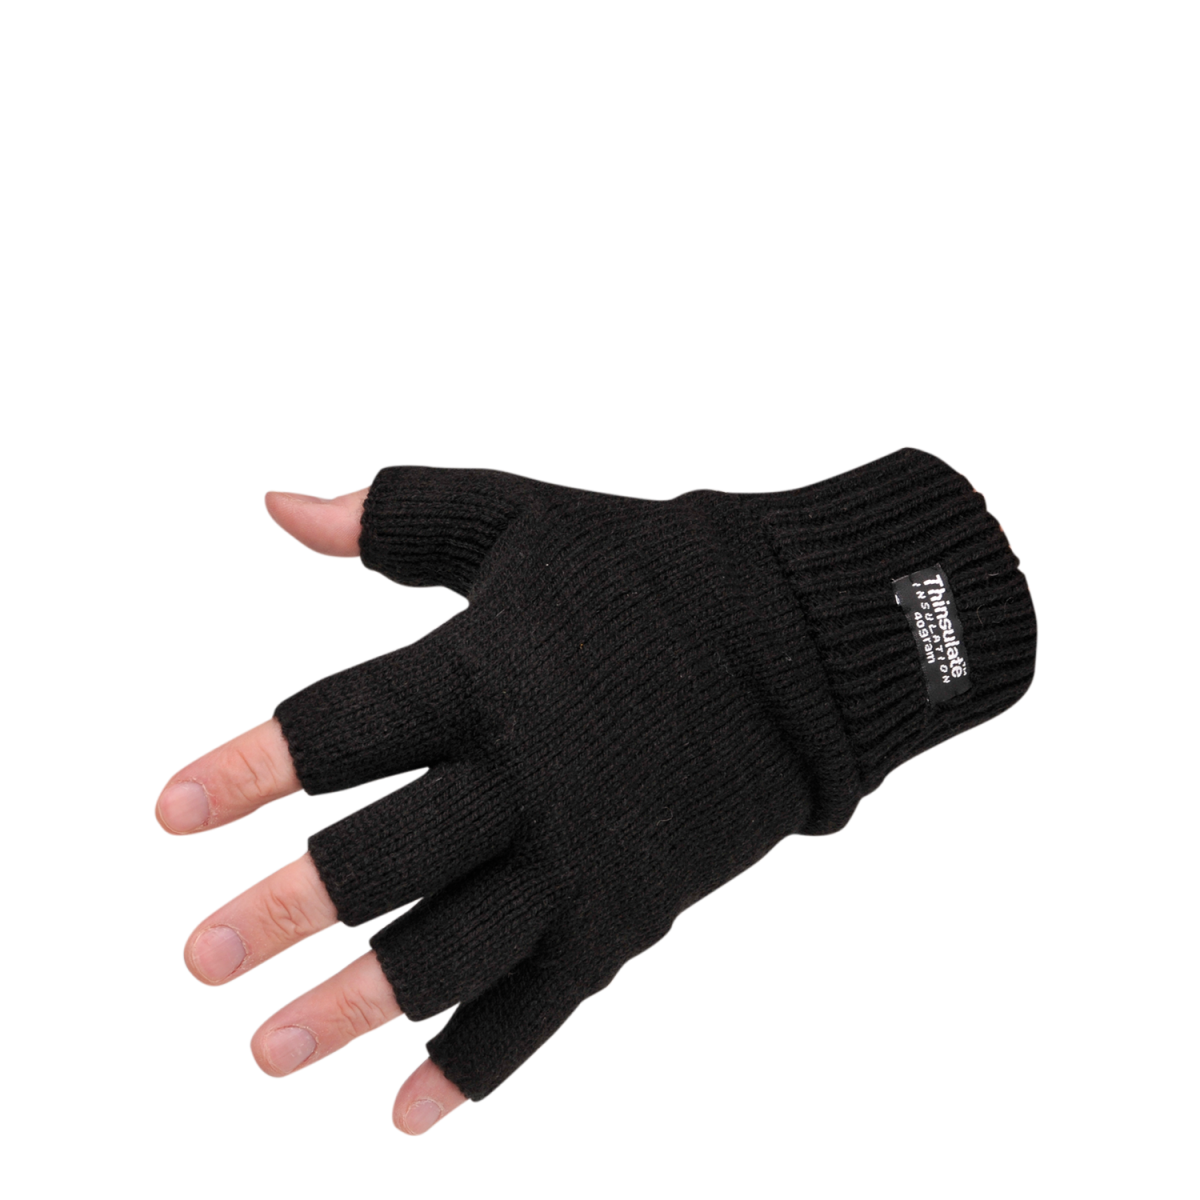 Fingerfreier Strick-Handschuh mit Thinsulate